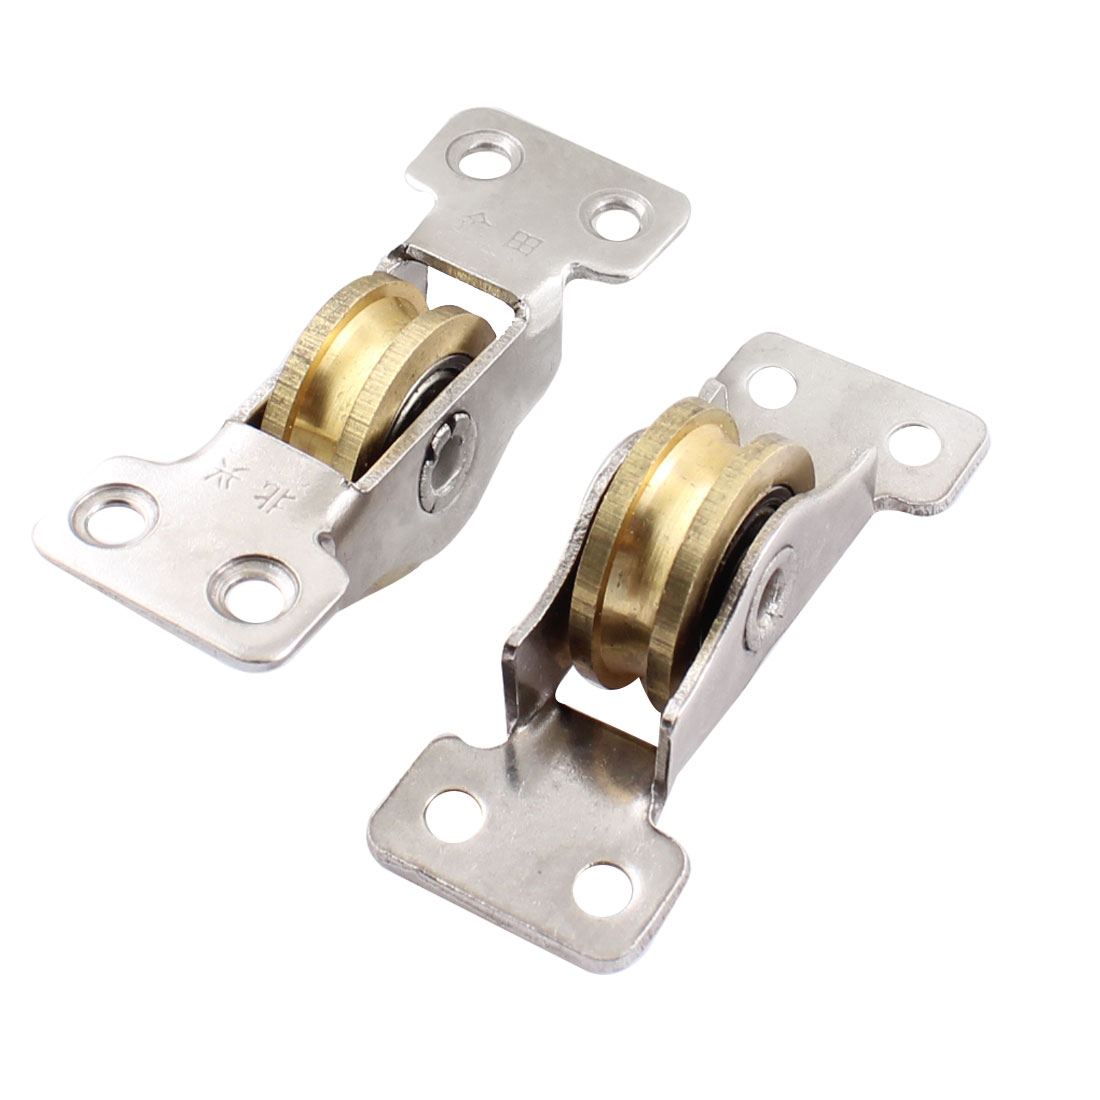 2pcs Brass Single Roller 2 Bearings Window Slding Pulley Wheel